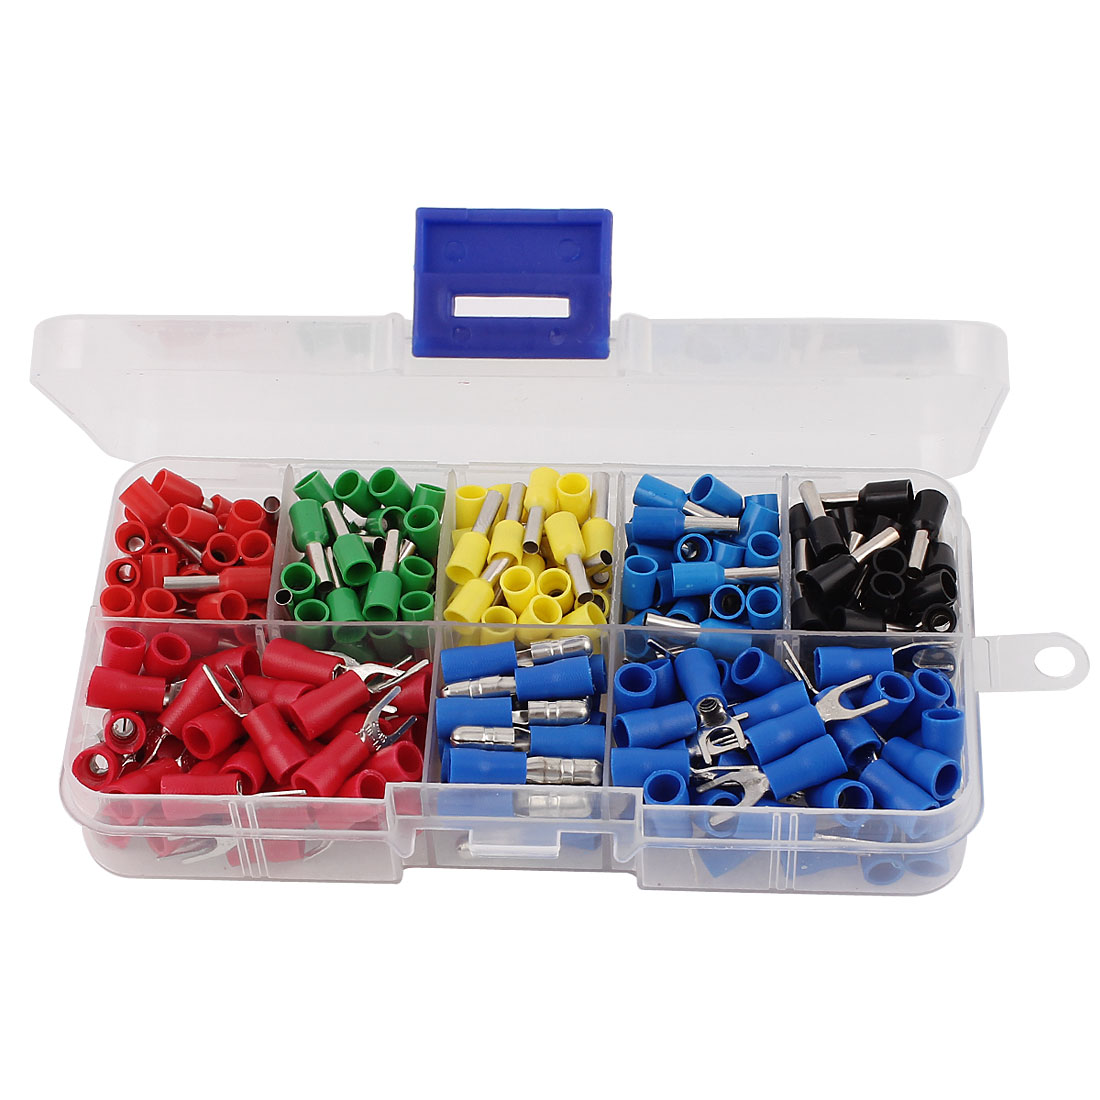 310 Pcs Heat Shrink Insulated Electrical Wire Tube Terminal Connector Assort Set